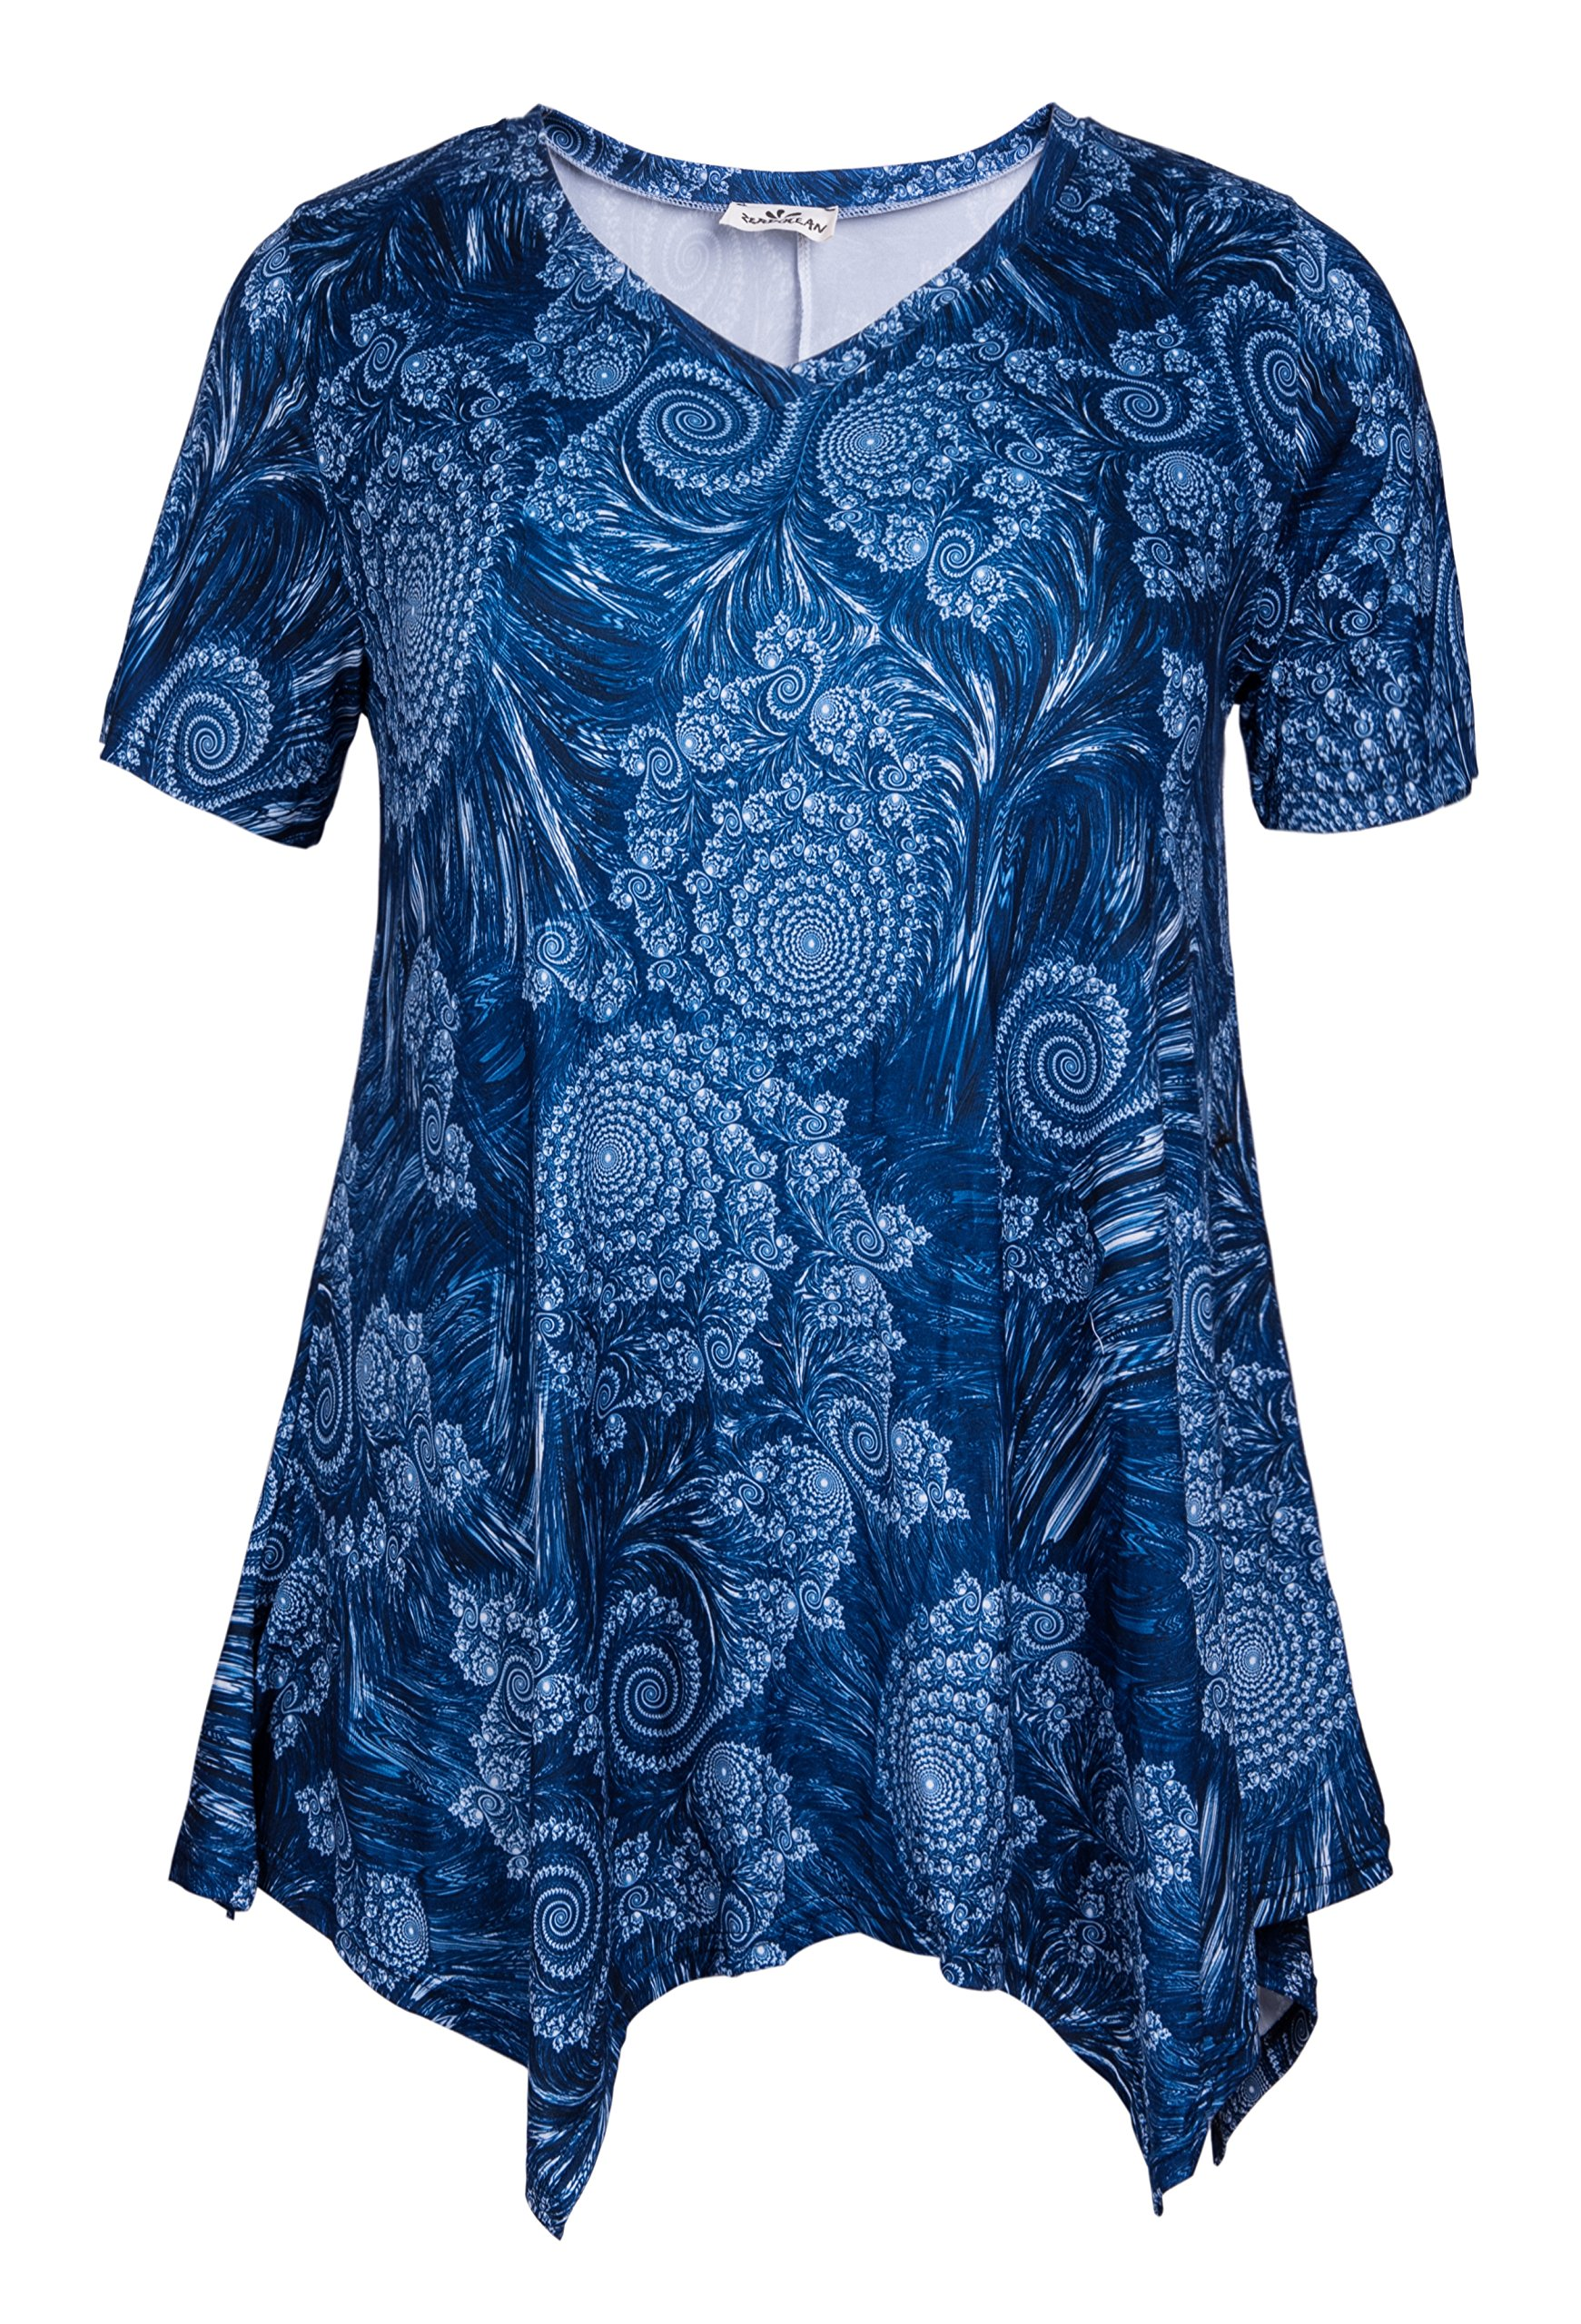 ZERDOCEAN Women Plus Size Printed Short Sleeves Tunic Tops Flowy T Shirt Style-810 3X